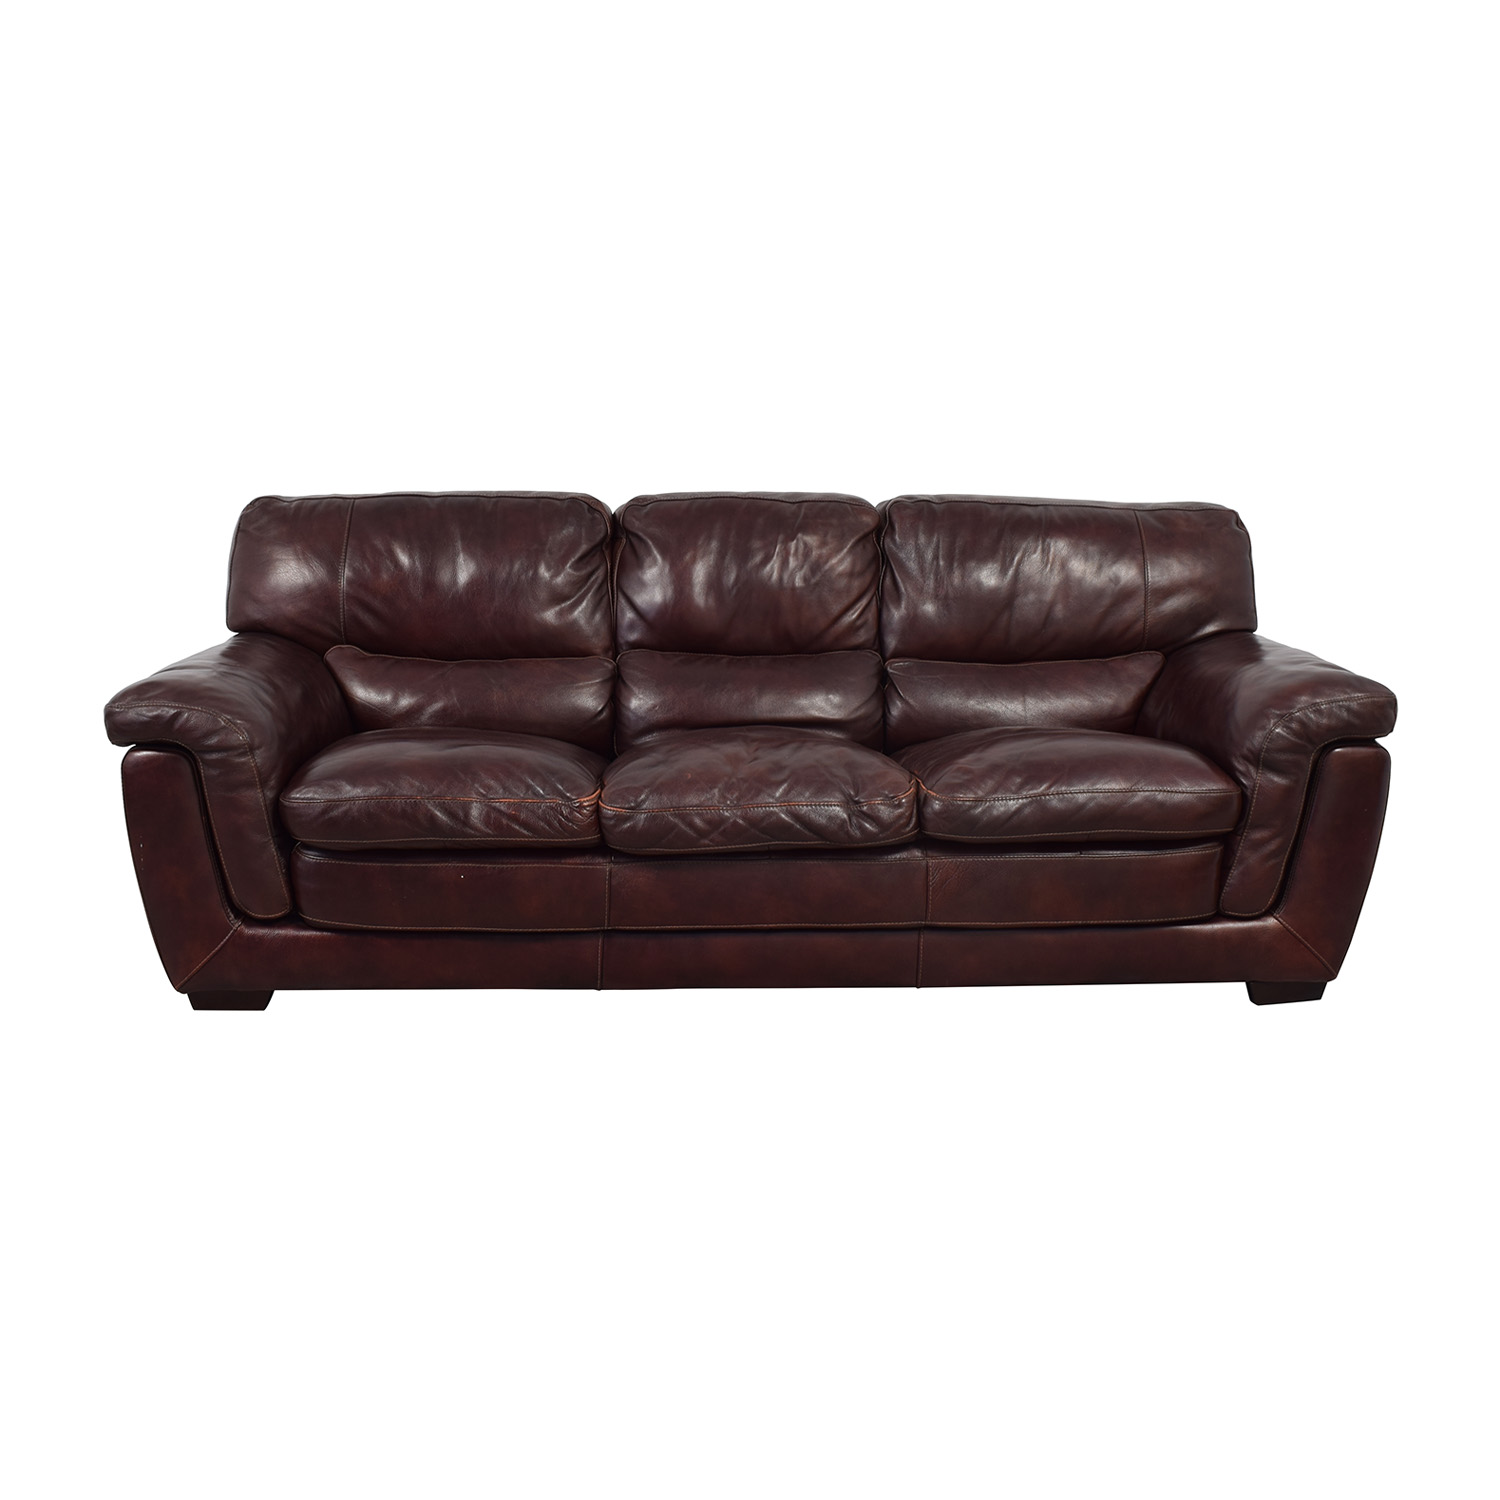 Raymour & Flanigan Raymour & Flanigan Burgundy Leather Three-Cushion Sofa coupon